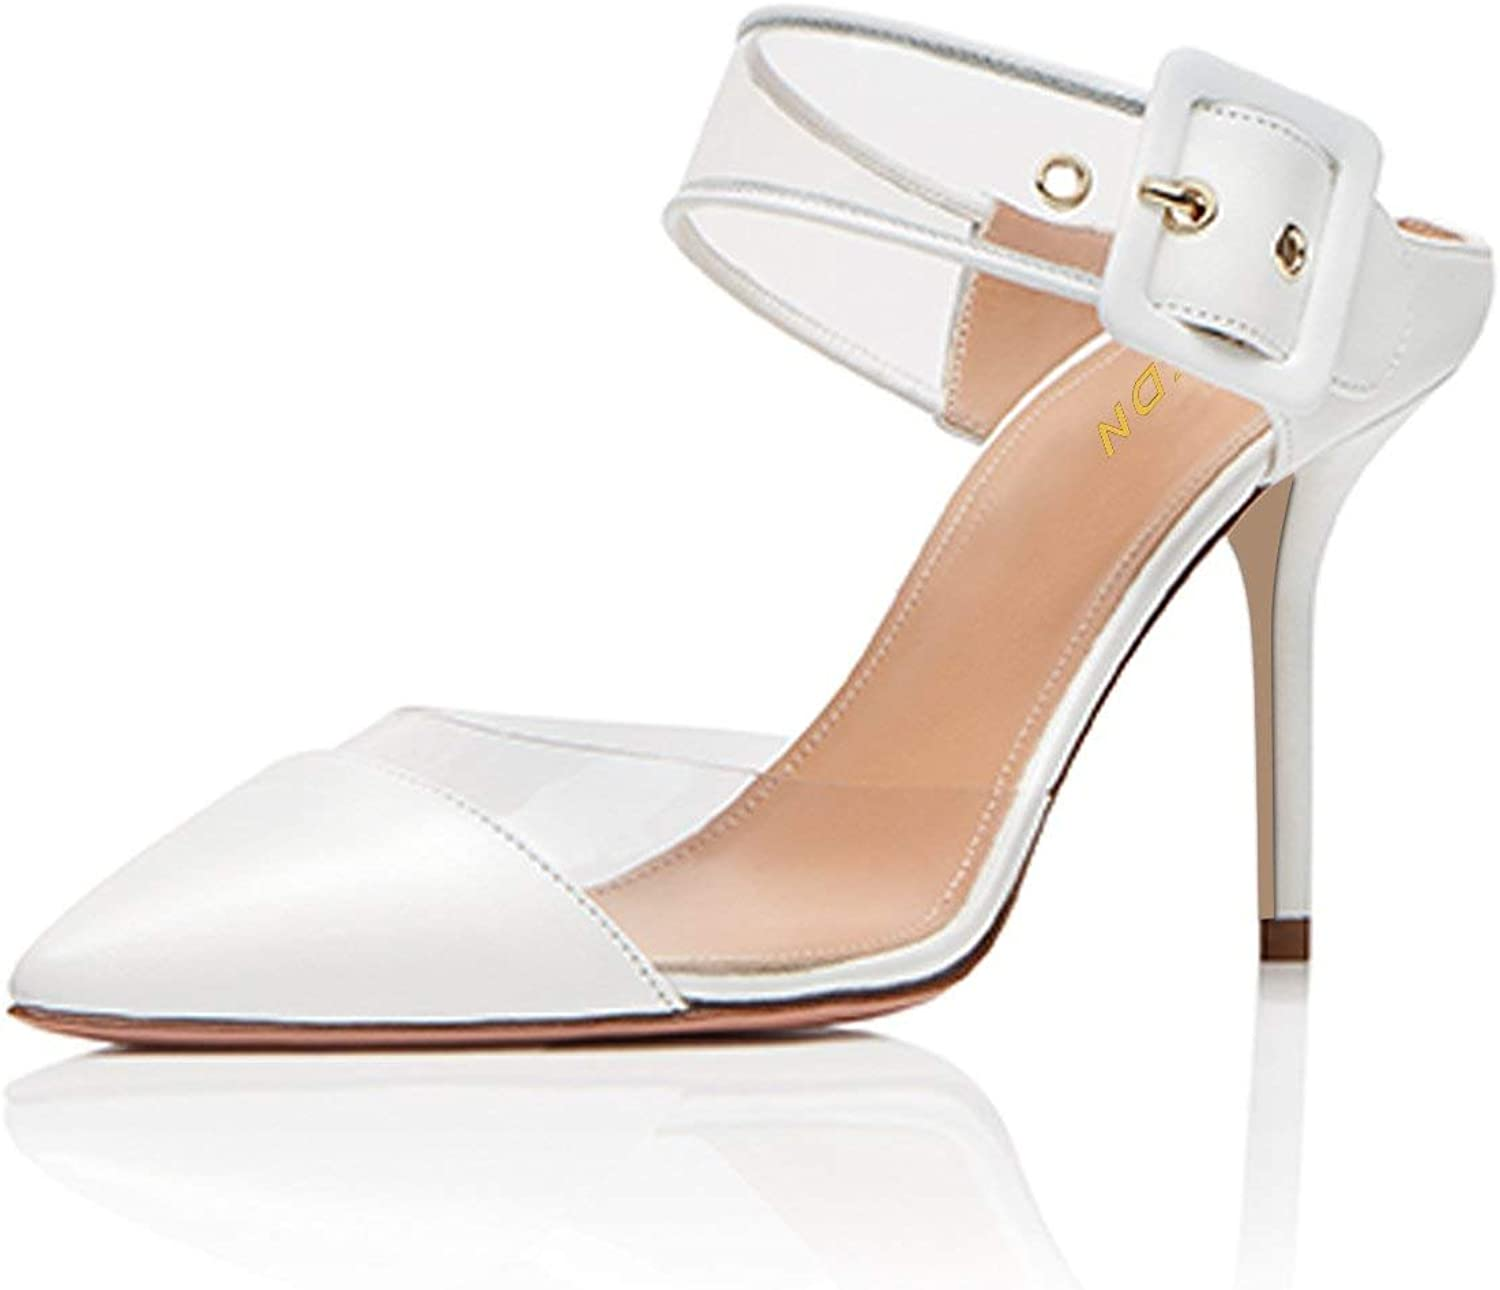 YDN Women Pointed Toe High Heel Slide Sandals Slip on Clogs Mules Transparent Stiletto shoes